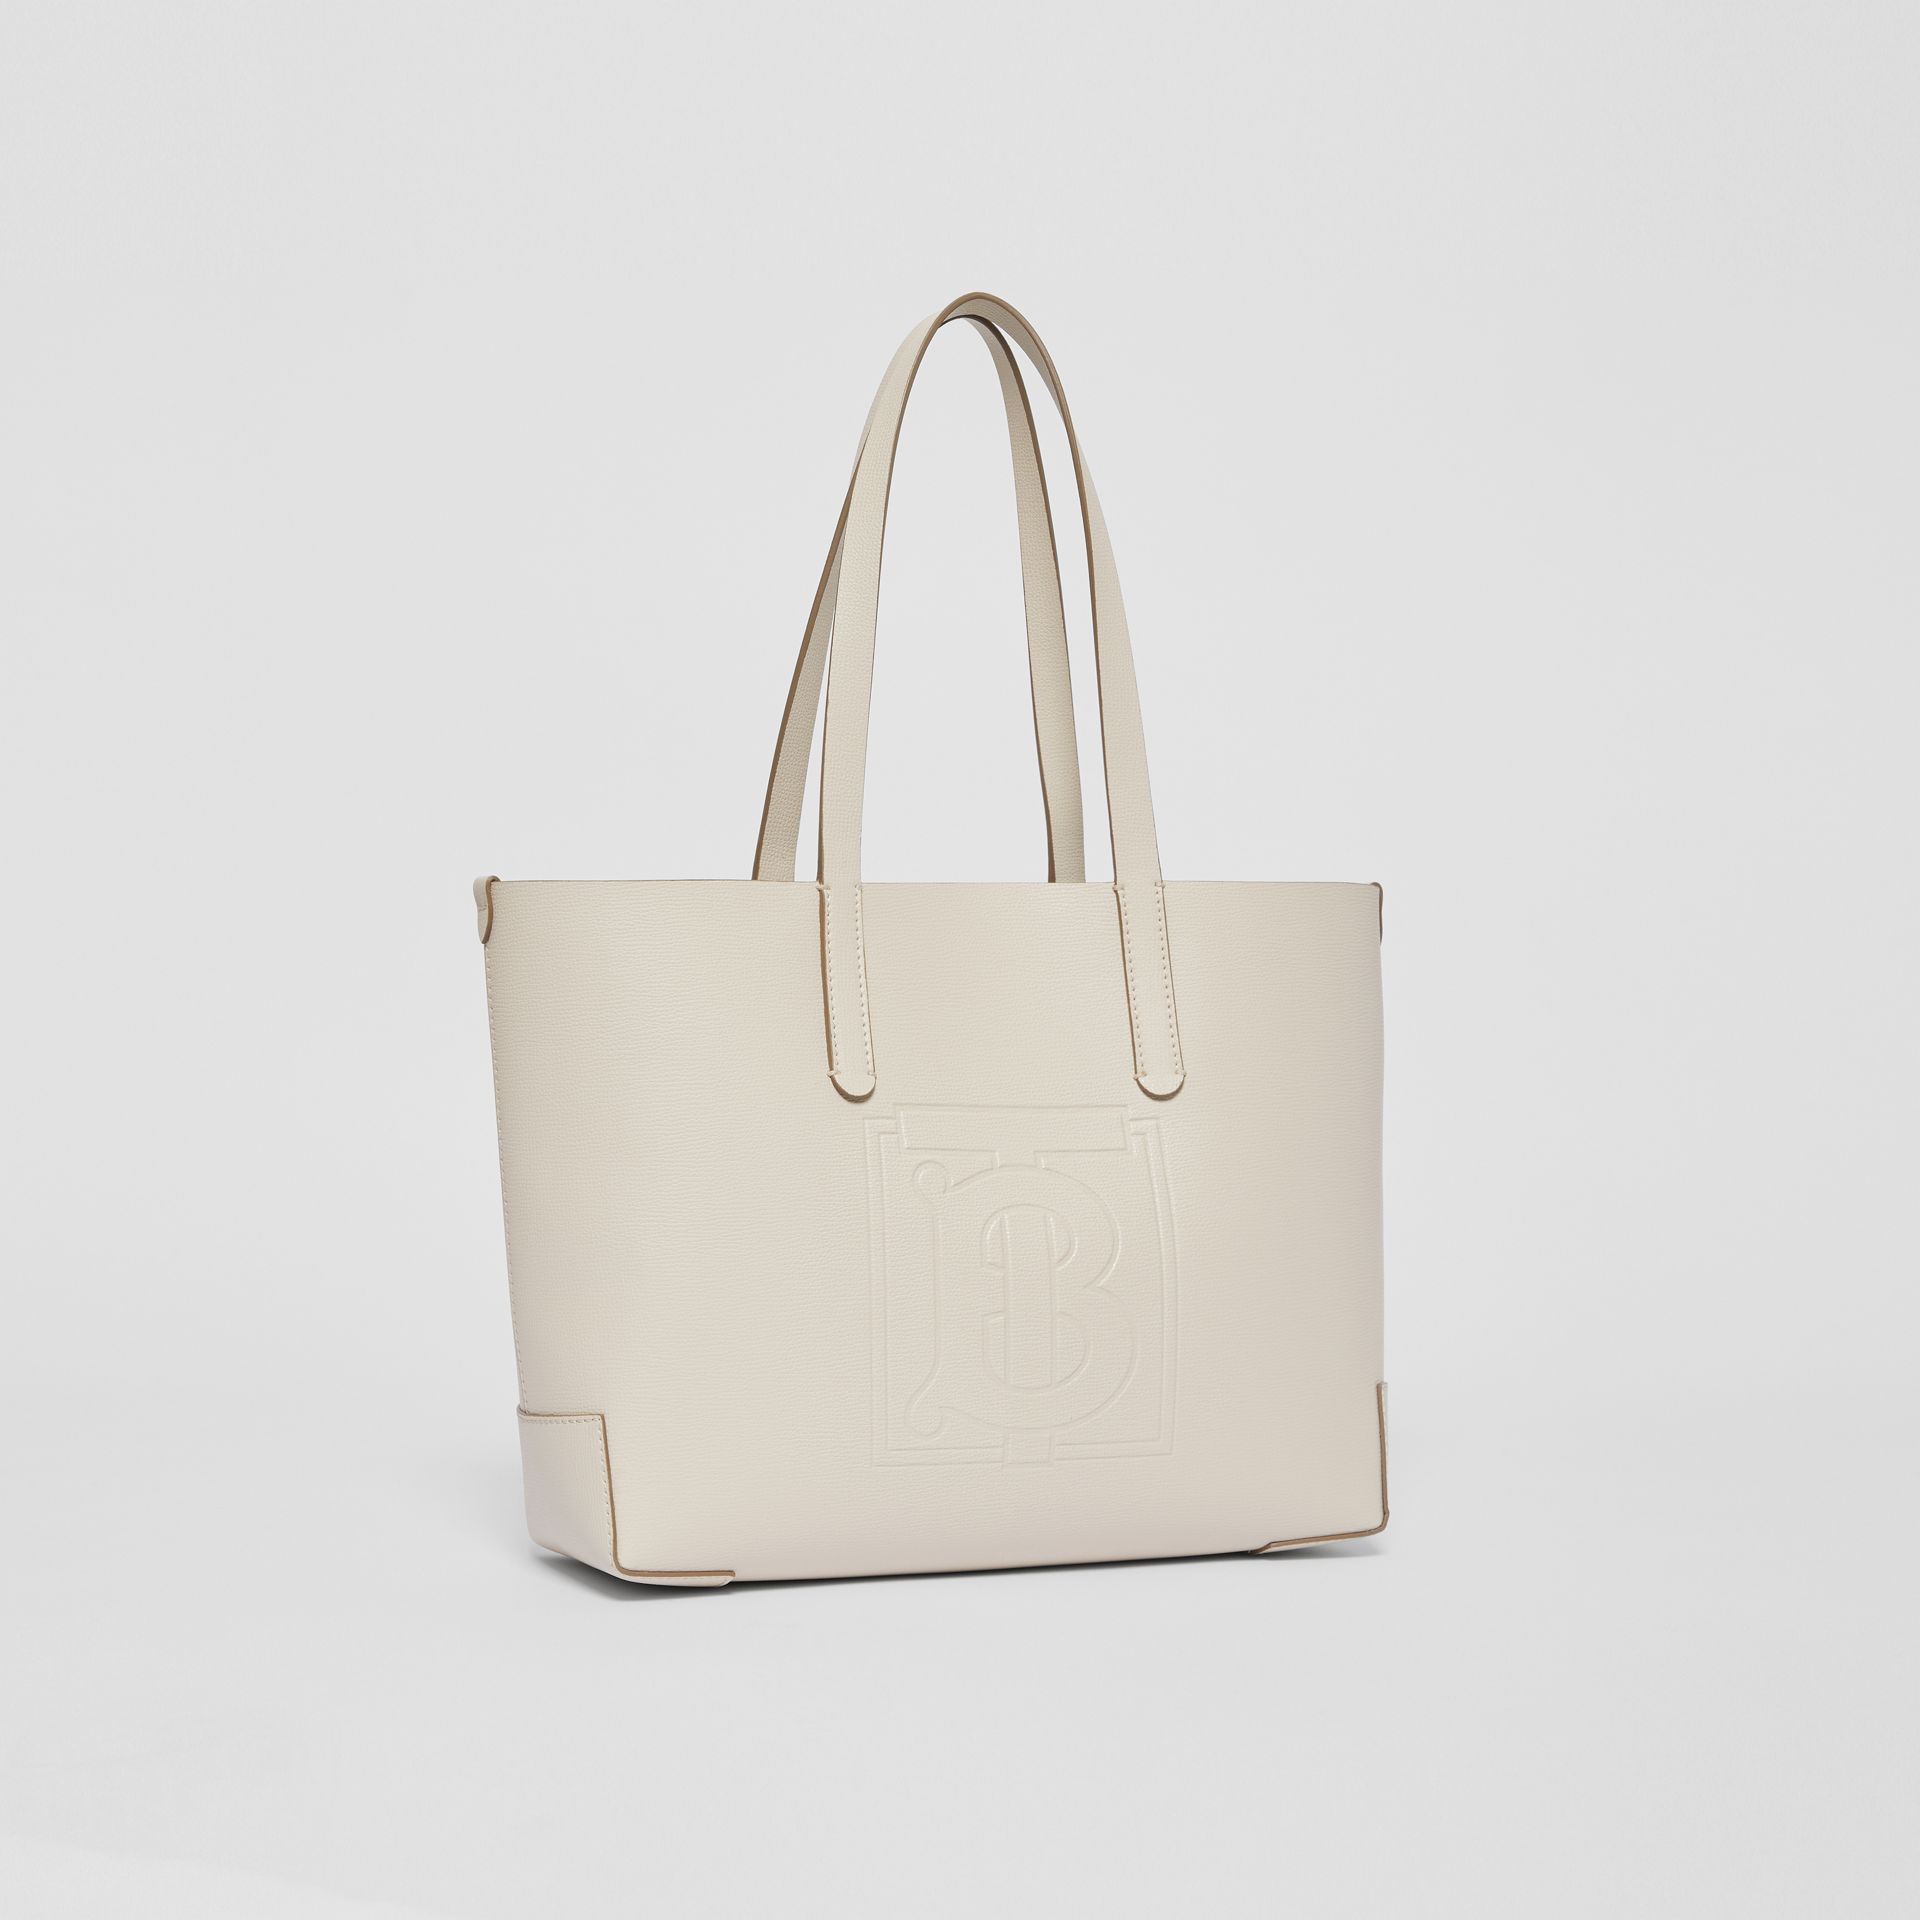 Embossed Monogram Motif Leather Tote in Limestone - Women | Burberry - gallery image 6